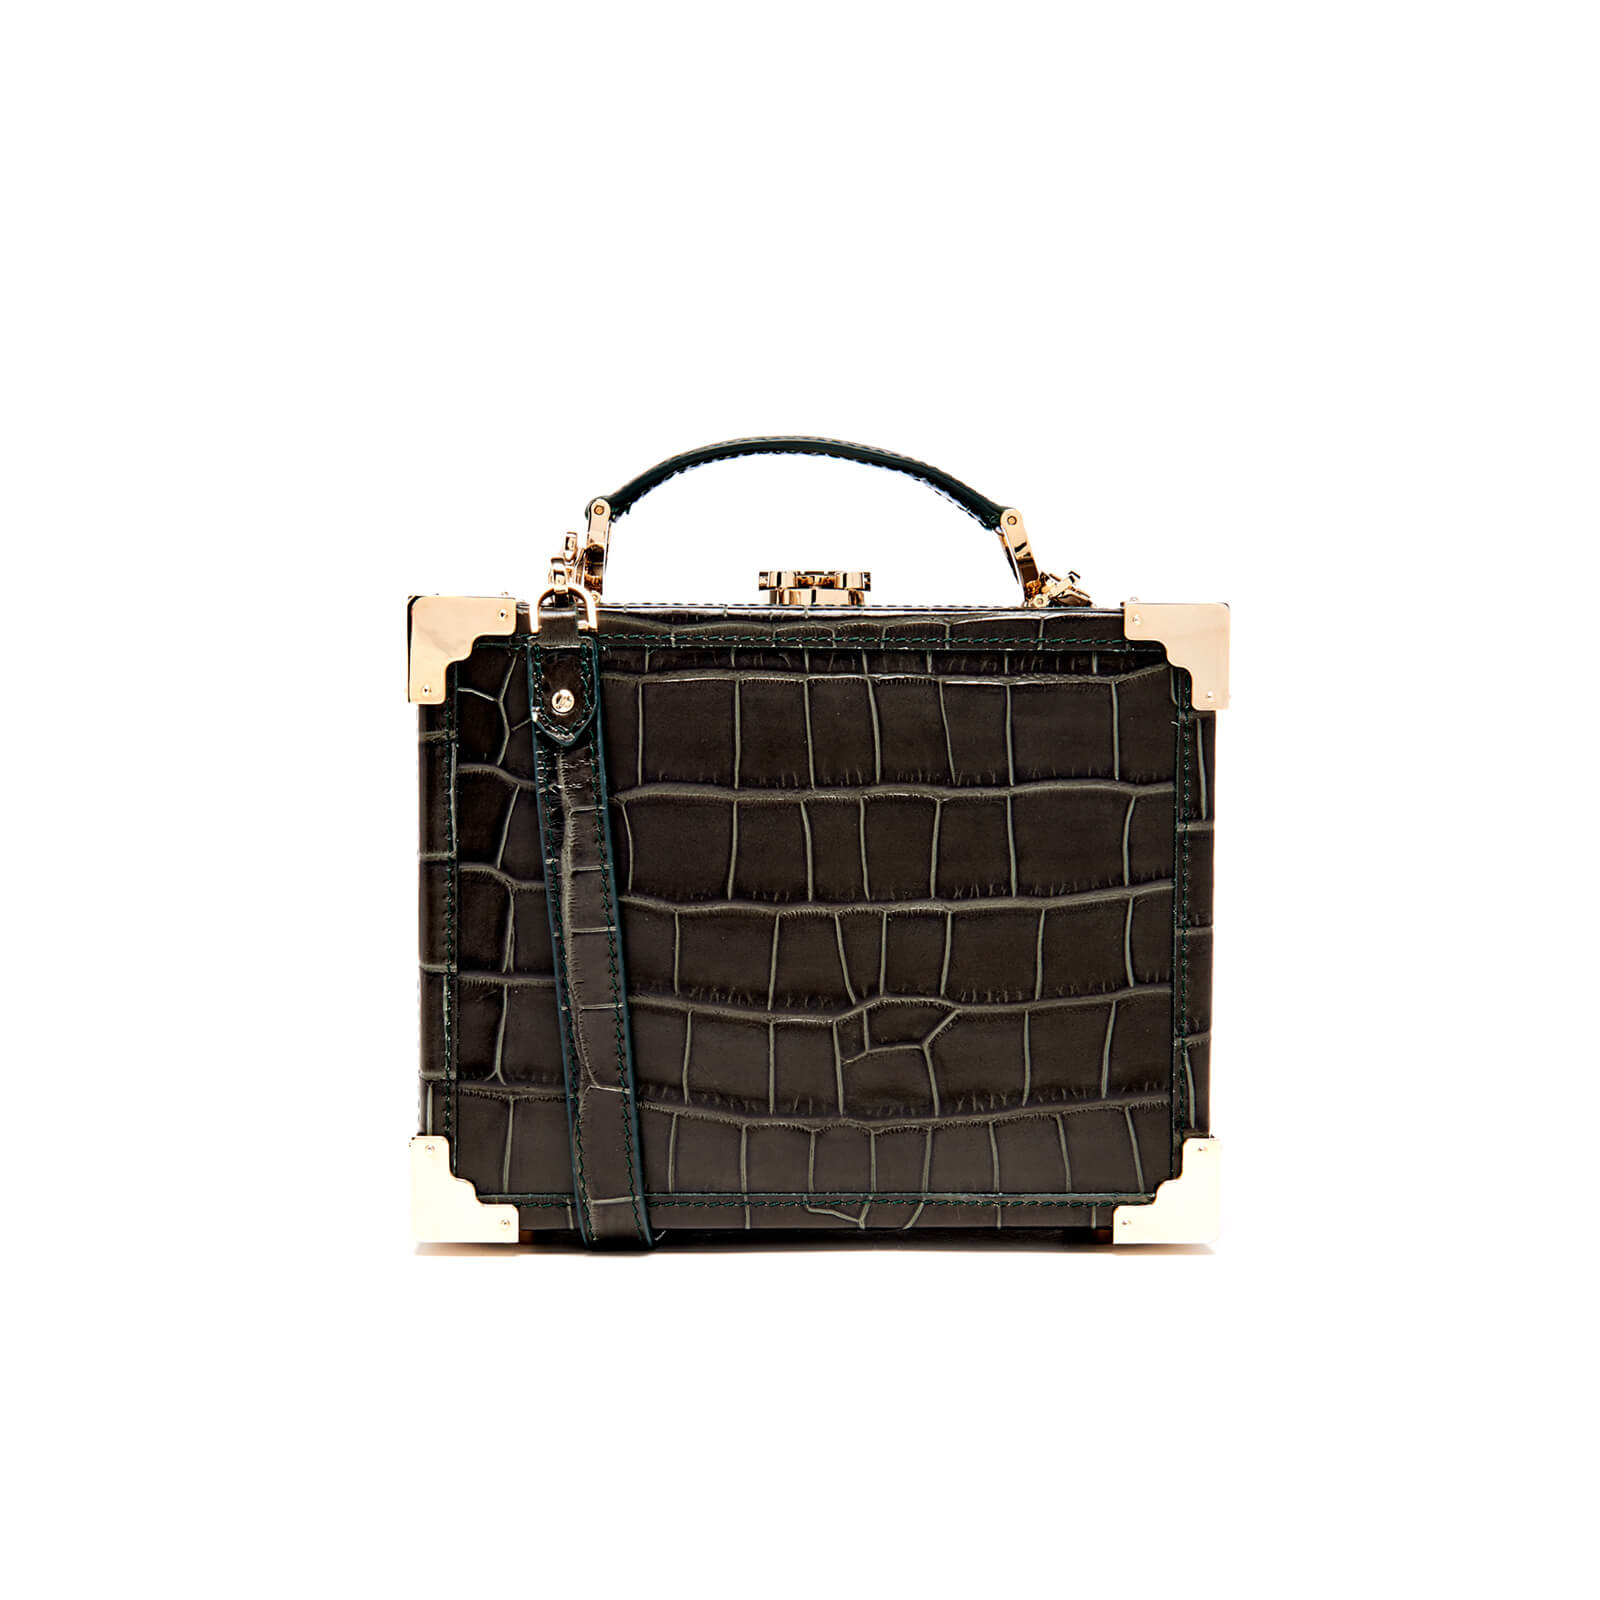 e701eec08 Aspinal of London Women s Mini Croc Trunk Bag - Forest Green Croc Womens  Accessories